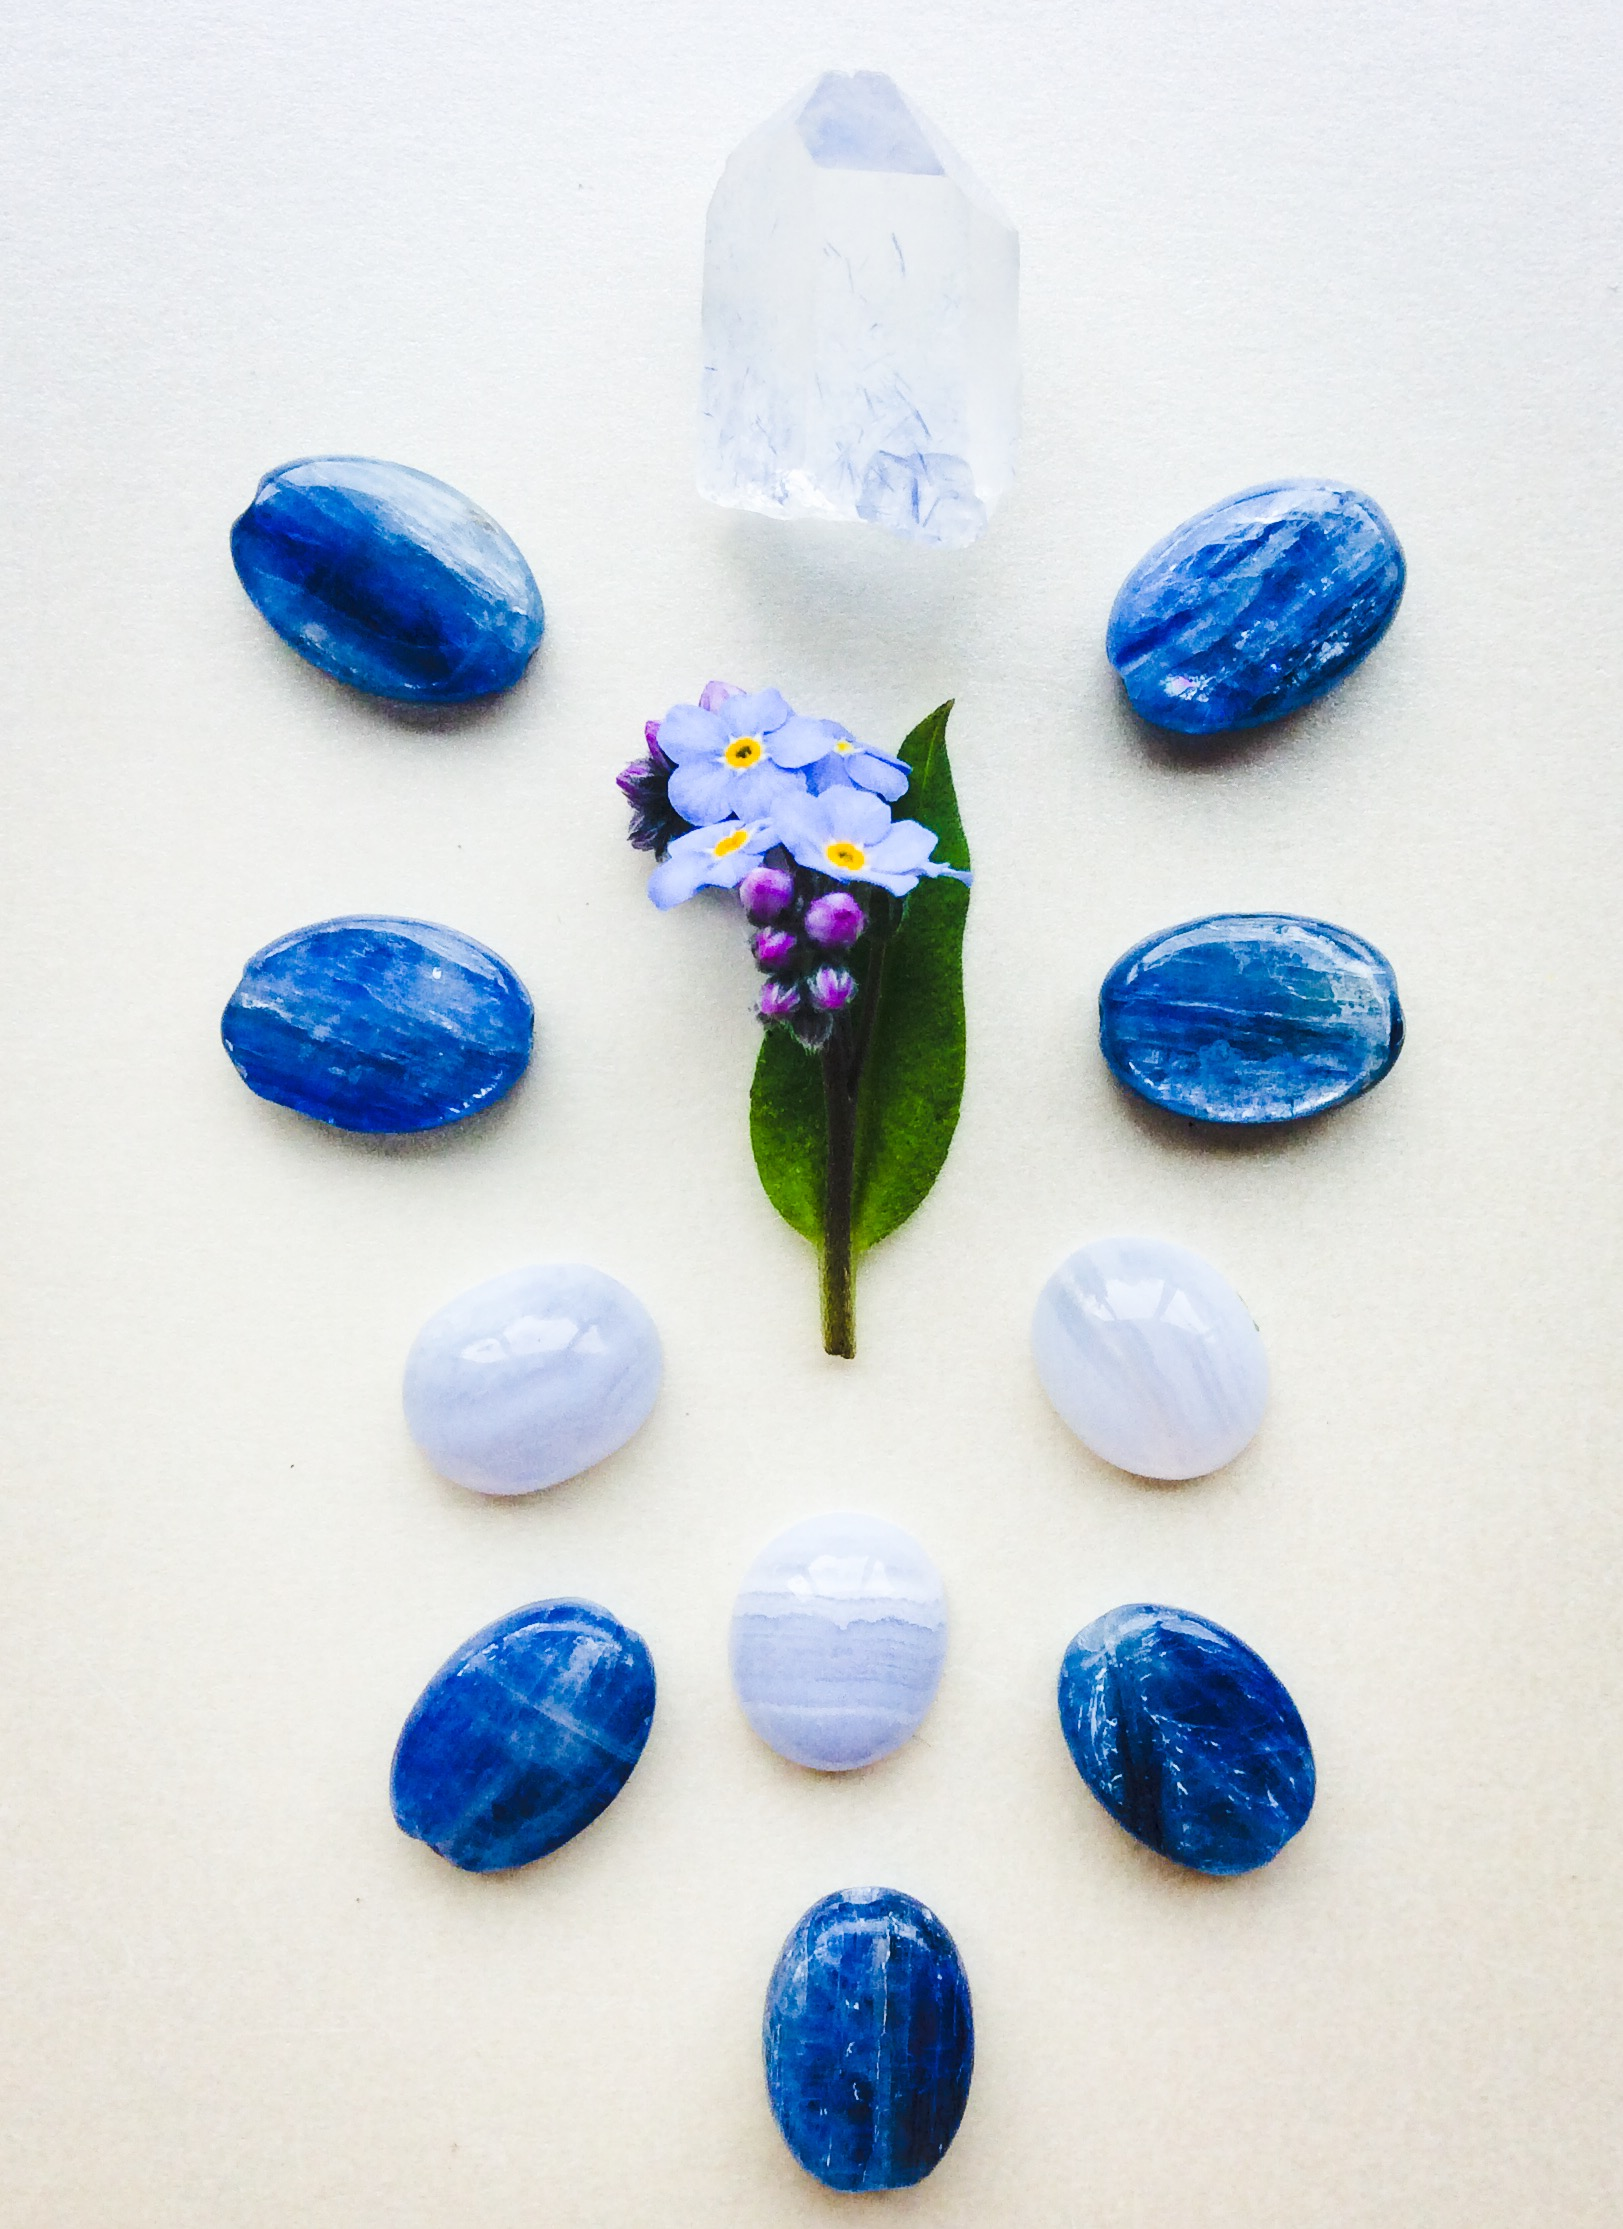 Blue Lace Agate, Kyanite, Dumortierite in Quartz and Forget-me-not